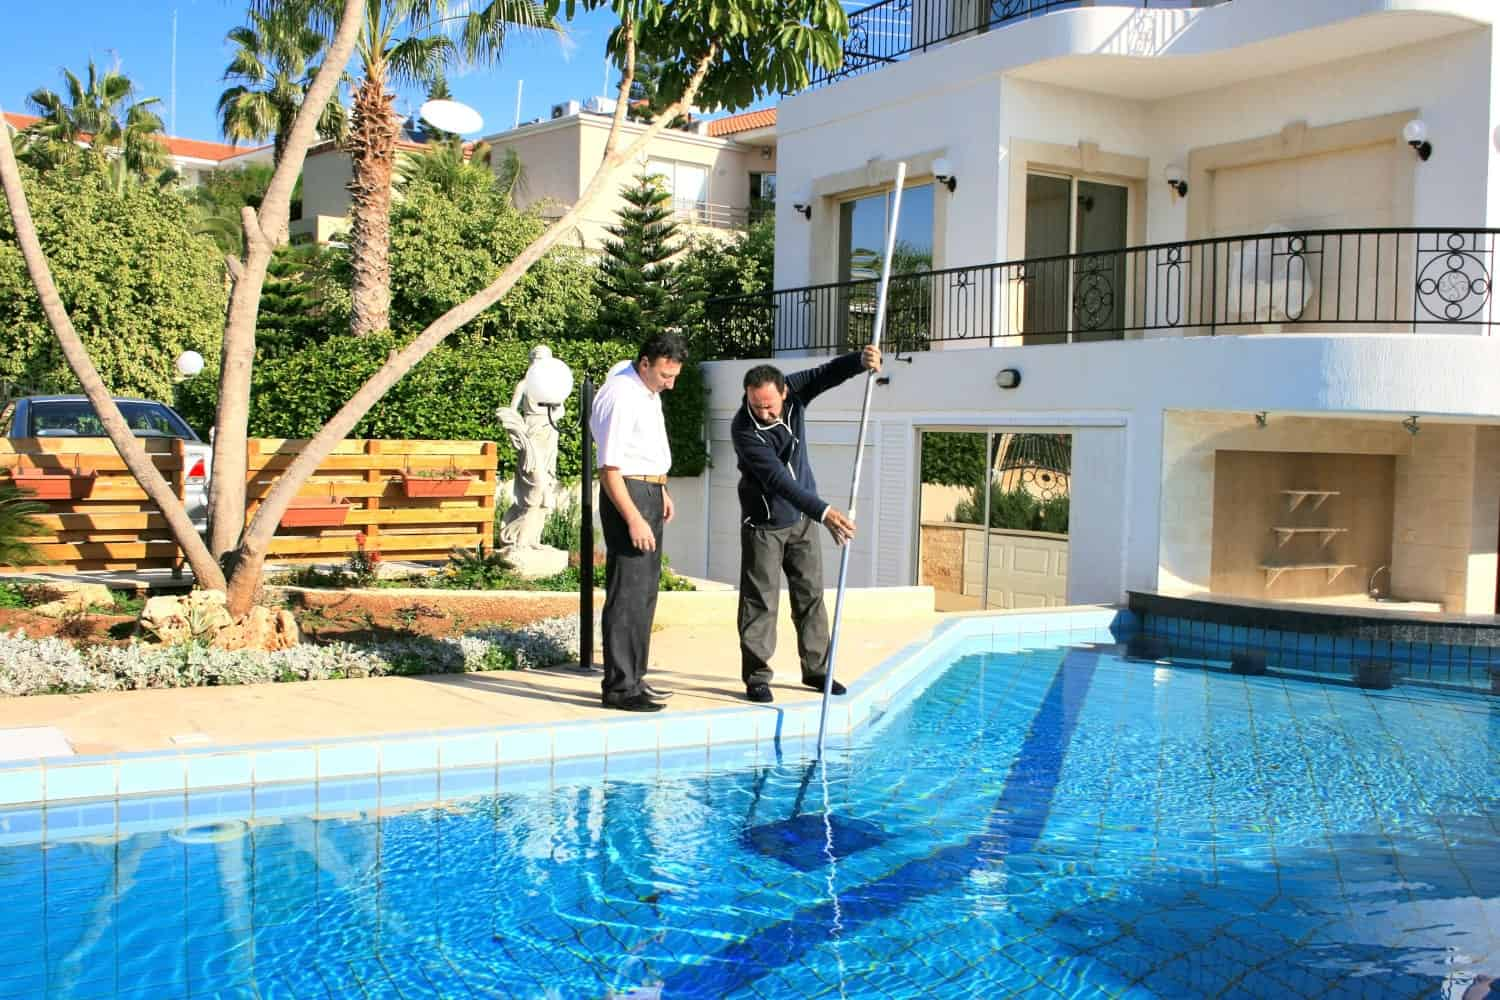 Two men at the side of the pool looking at the water as one of them cleans it with a pool cleaner.